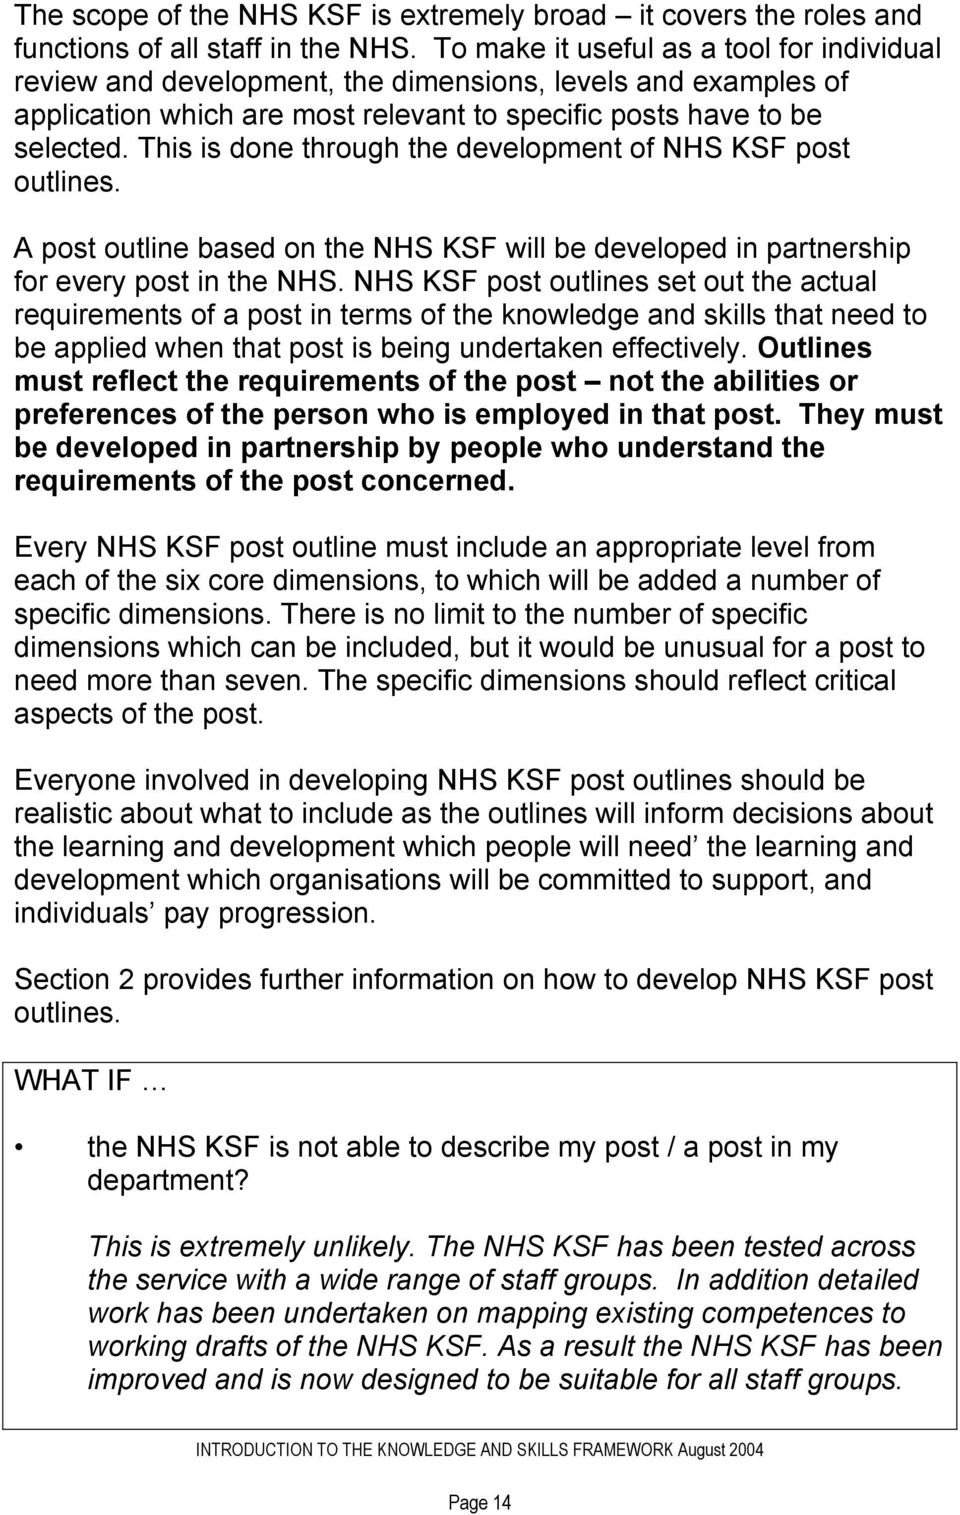 This is done through the development of NHS KSF post outlines. A post outline based on the NHS KSF will be developed in partnership for every post in the NHS.